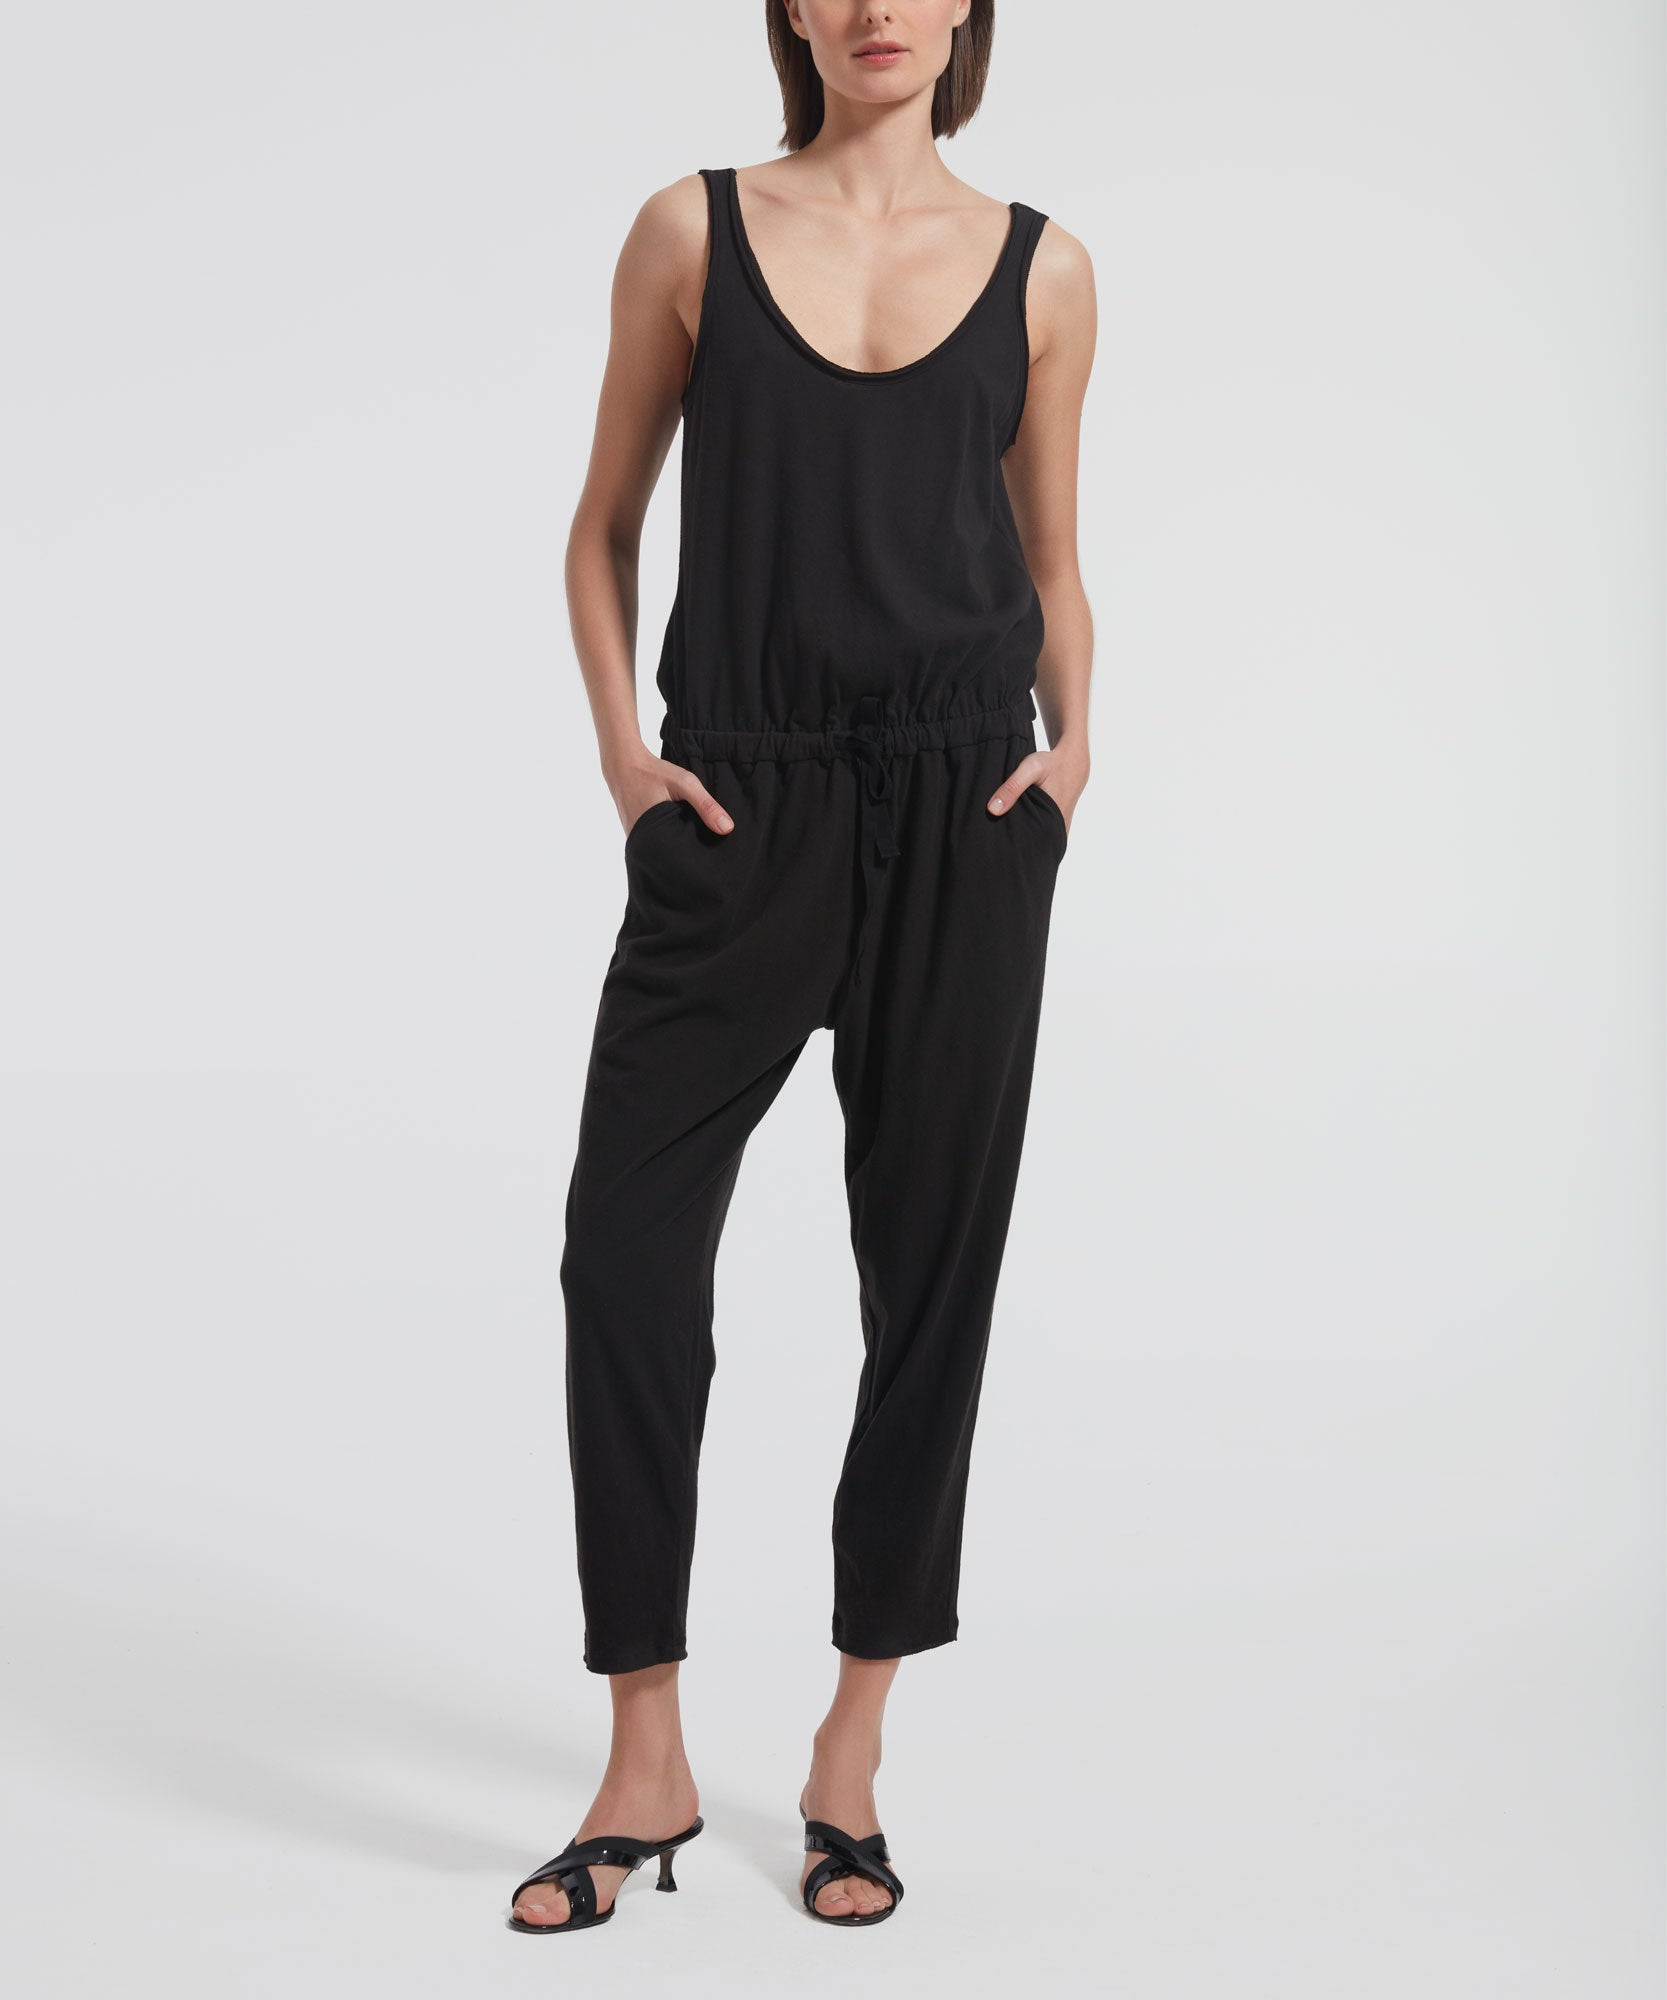 Black High Torsion Jumpsuit - Women's Sleeveless Jumpsuit by ATM Anthony Thomas Melillo